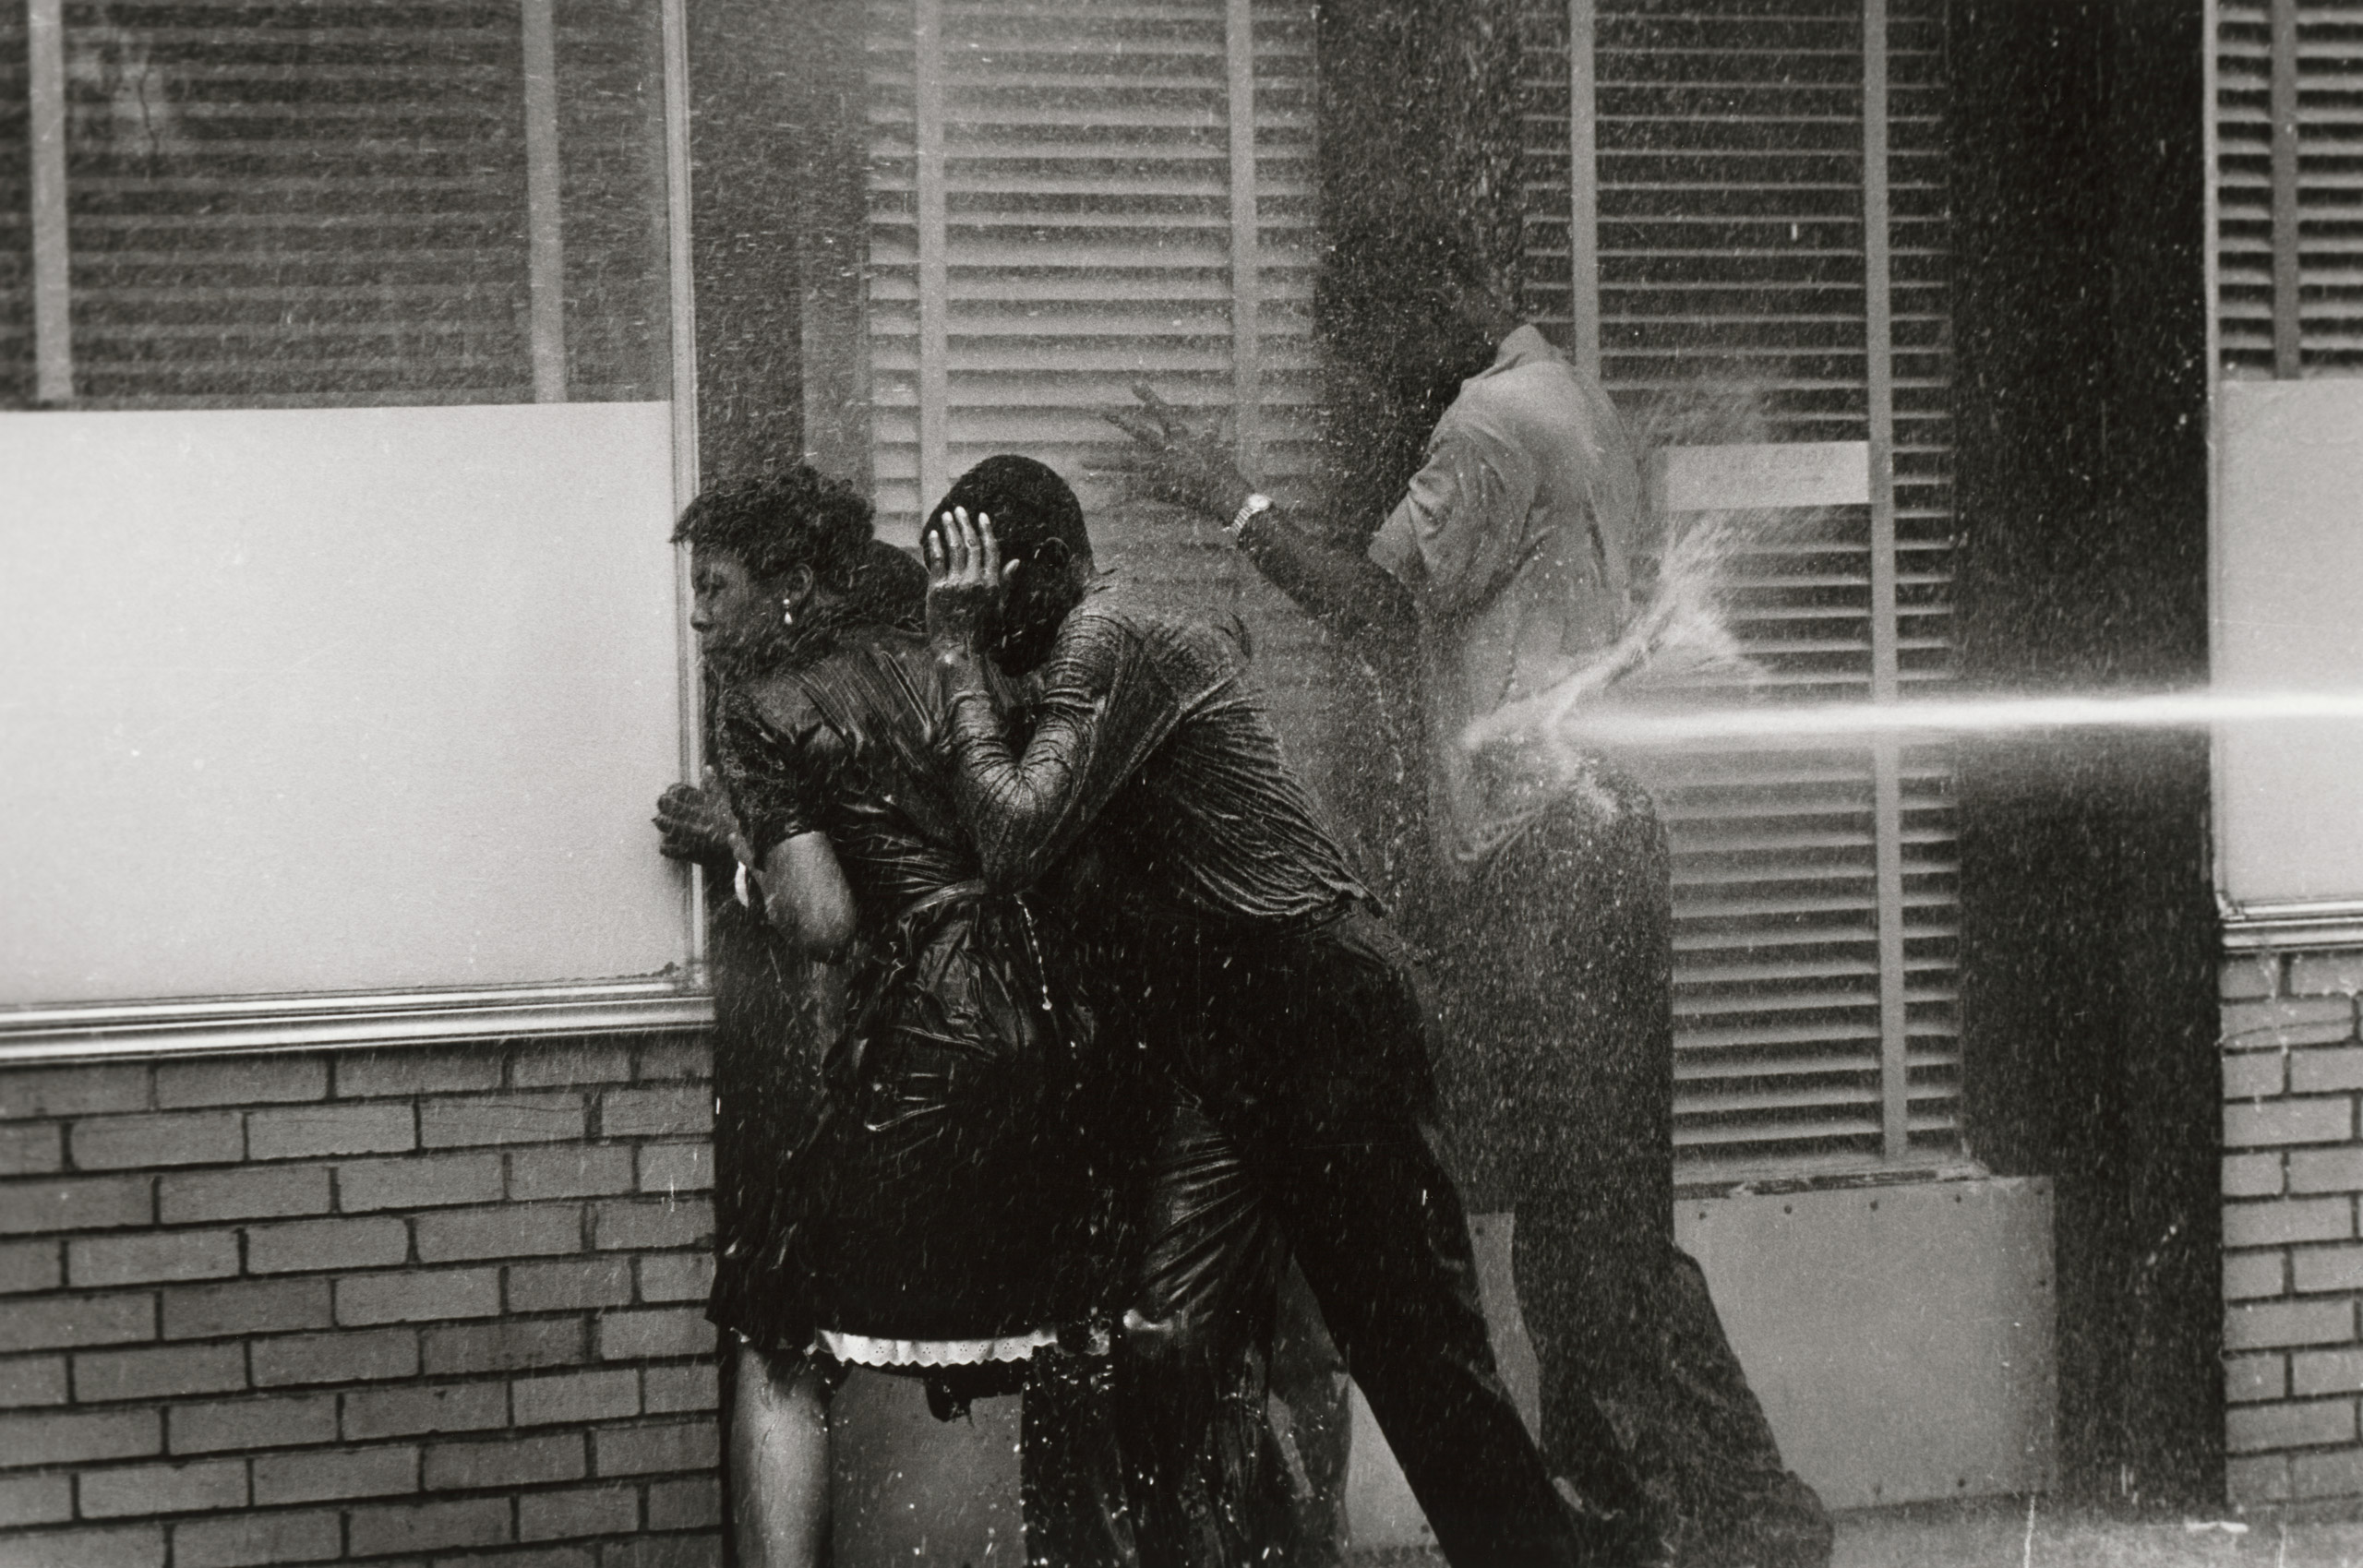 Alabama Fire Department aims high-pressure water hoses at civil rights demonstrators, May 1963.